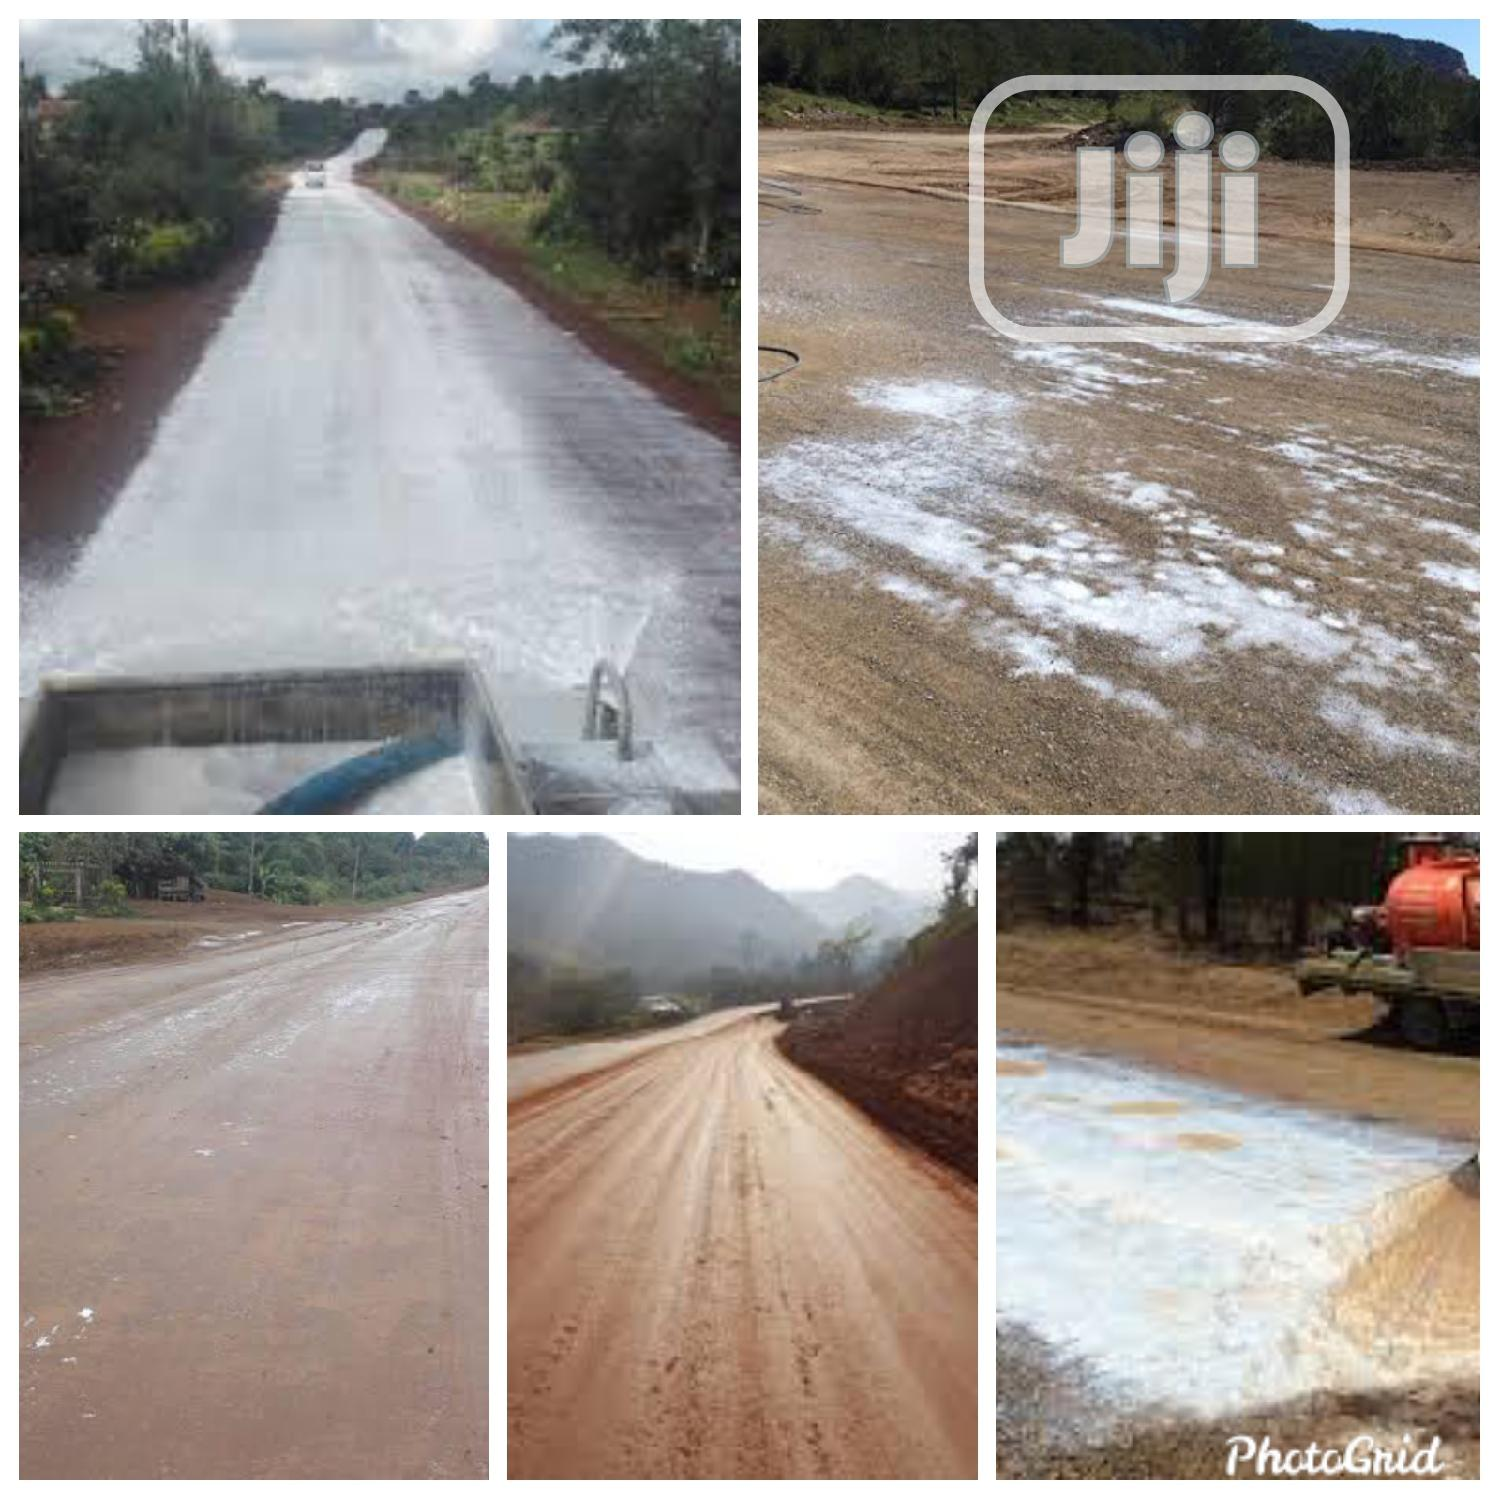 Using Soil Hardeners To Build Temporarily Motorable Roads